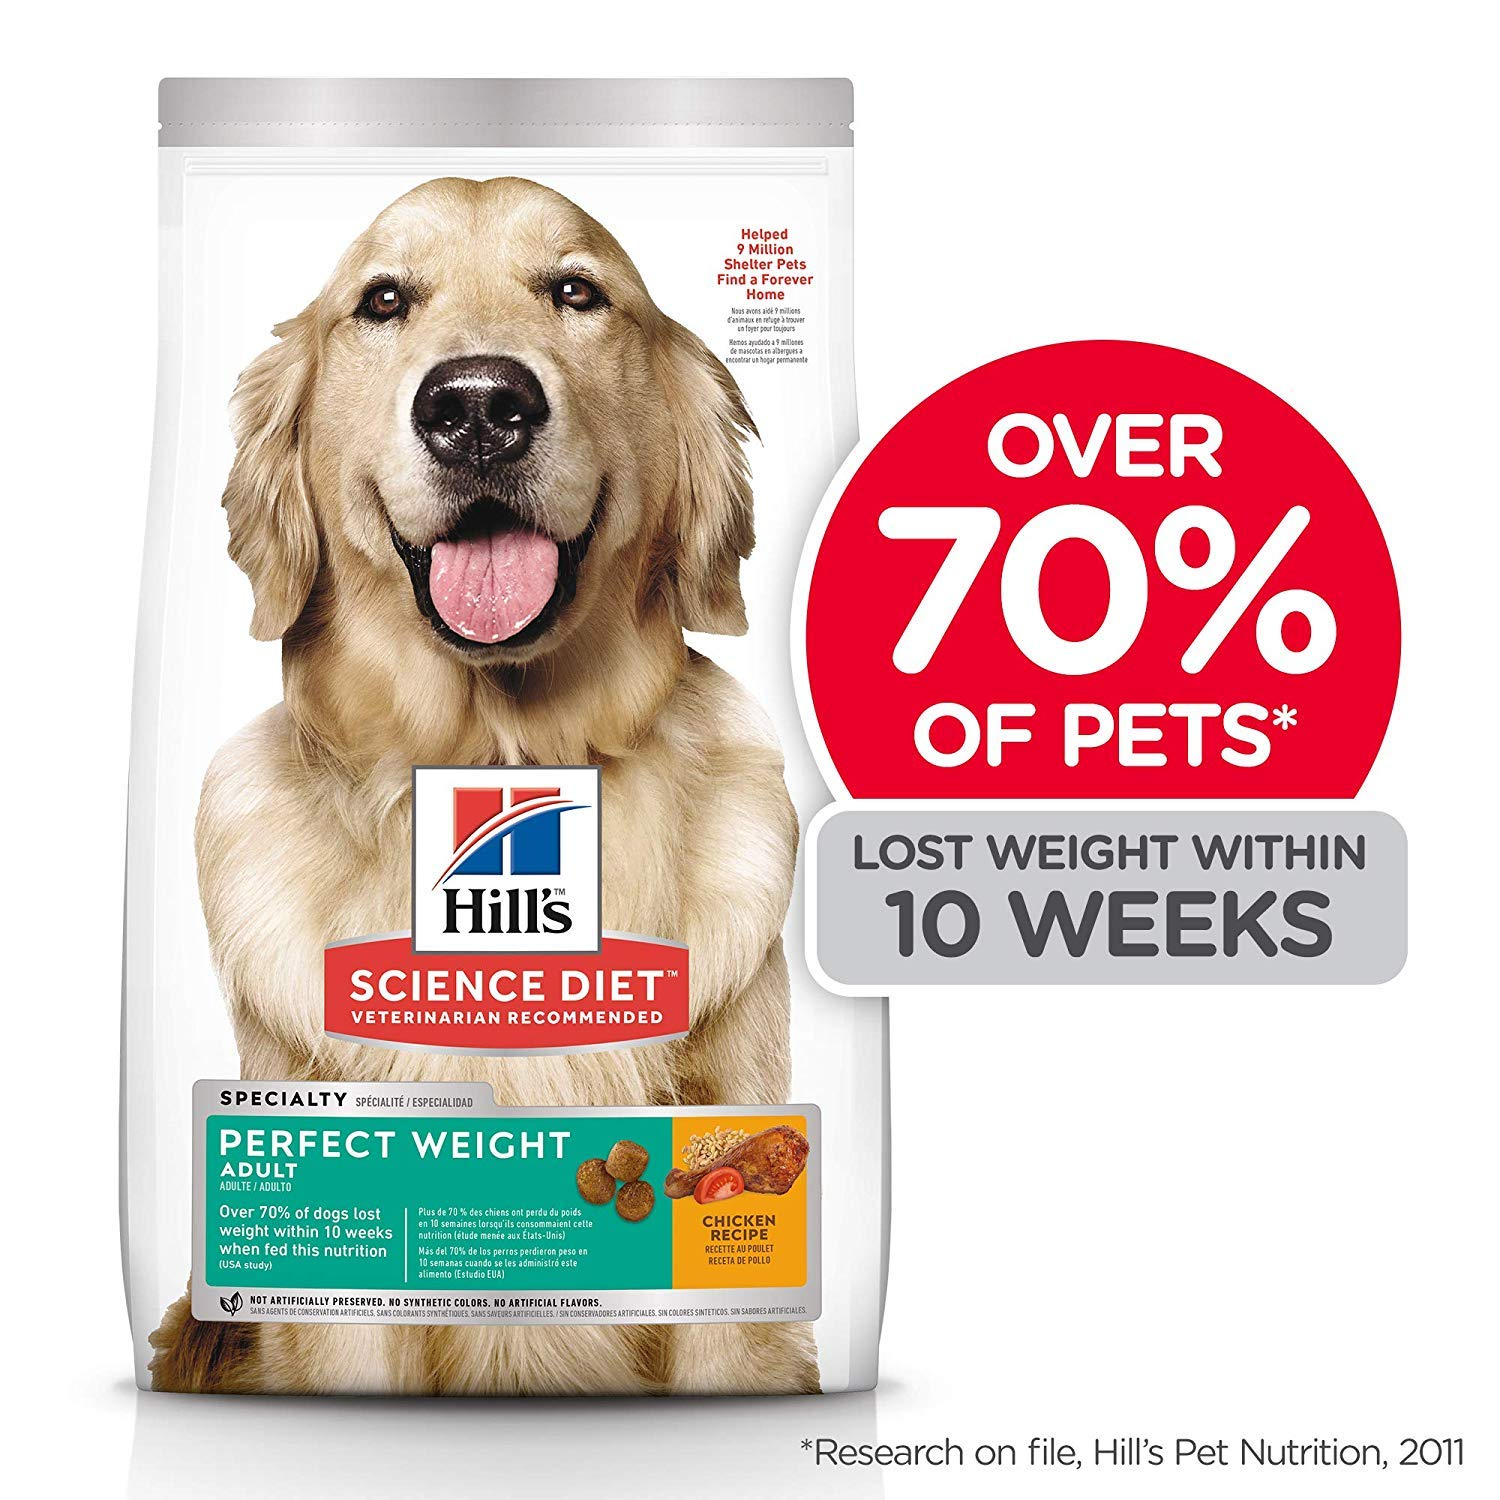 Hill's Science Diet Dry Dog Food, Adult, Perfect Weight for Healthy Weight & Weight Management, Chicken Recipe, 28.5 lb Bag by Hill's Science Diet